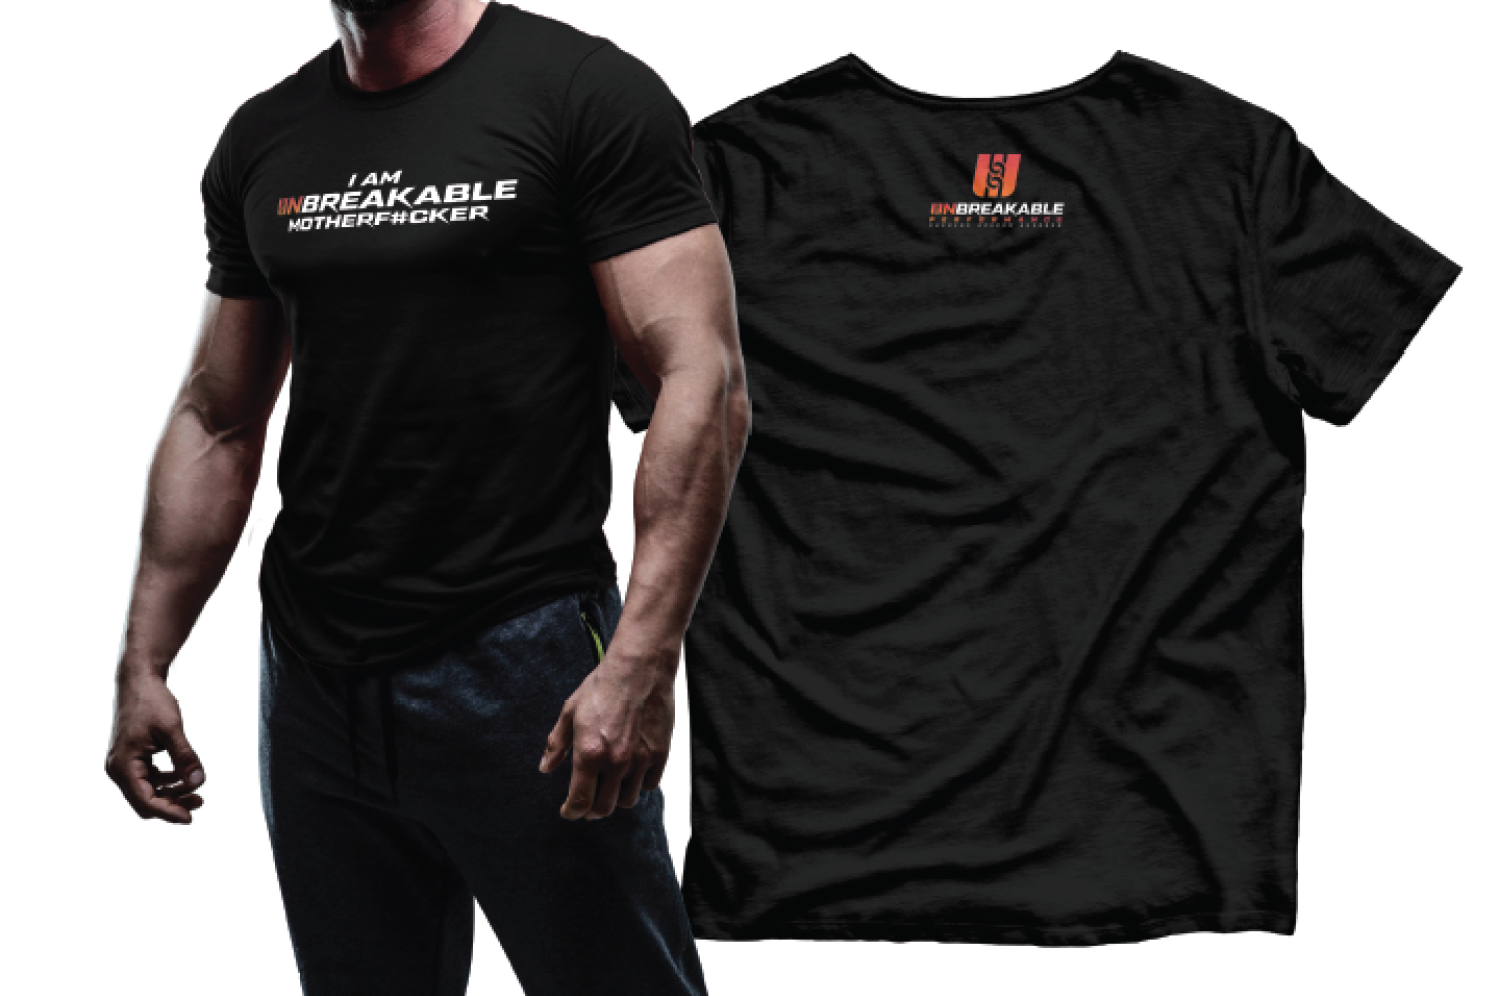 Unbreakable Performance Shirt Mockup.png